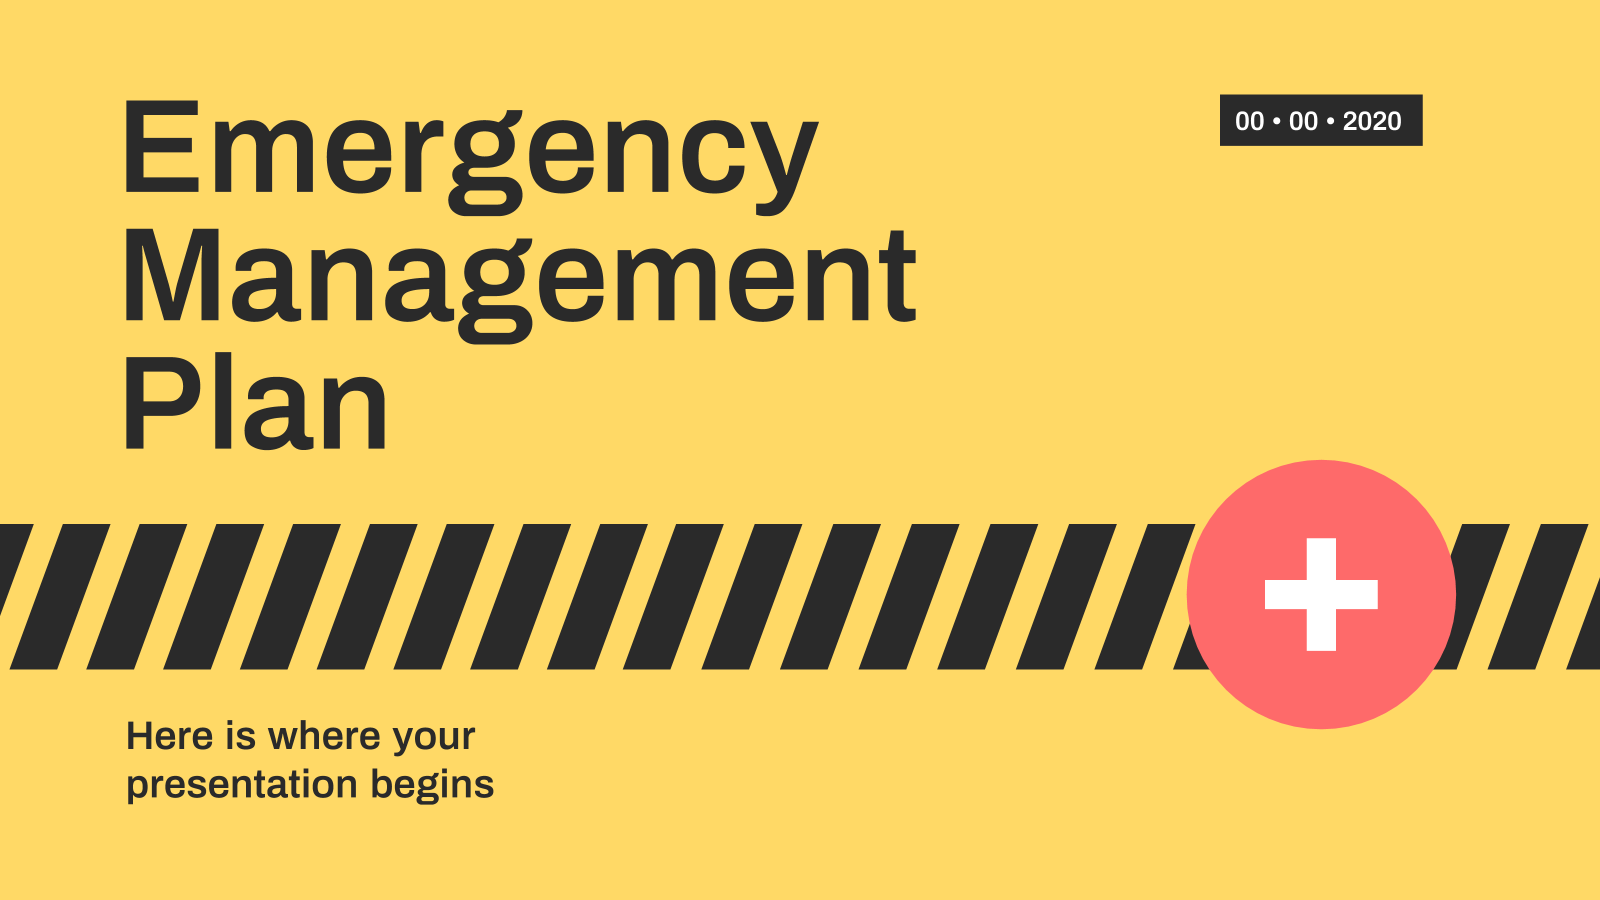 Emergency Management Plan presentation template